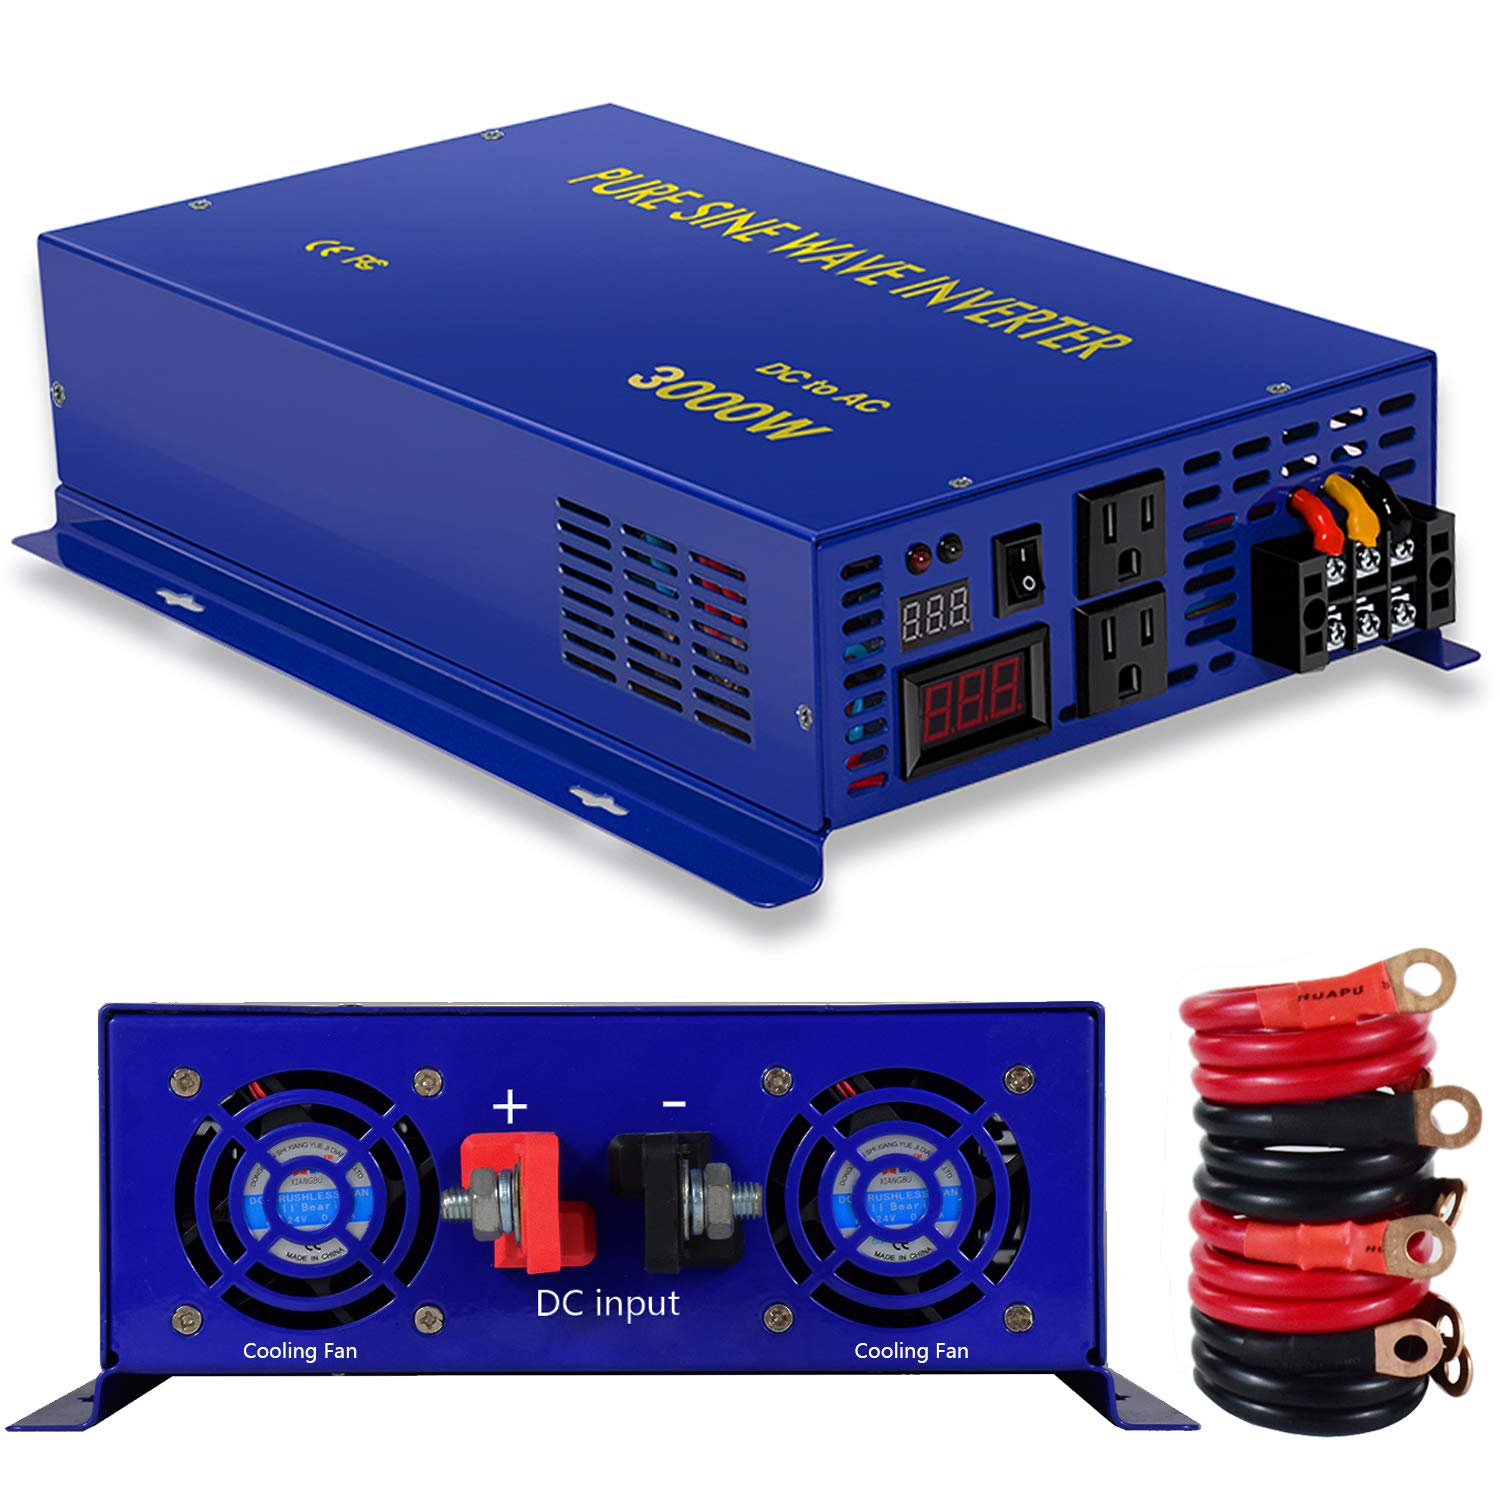 XYZ INVT 3000W Pure Sine Wave Power Inverter 24V DC to 120V AC with 2 AC Outlets 2 Sets of Battery Cables, Power Converter Generator for Home Solar System, RV, Camping.(3000W24V)